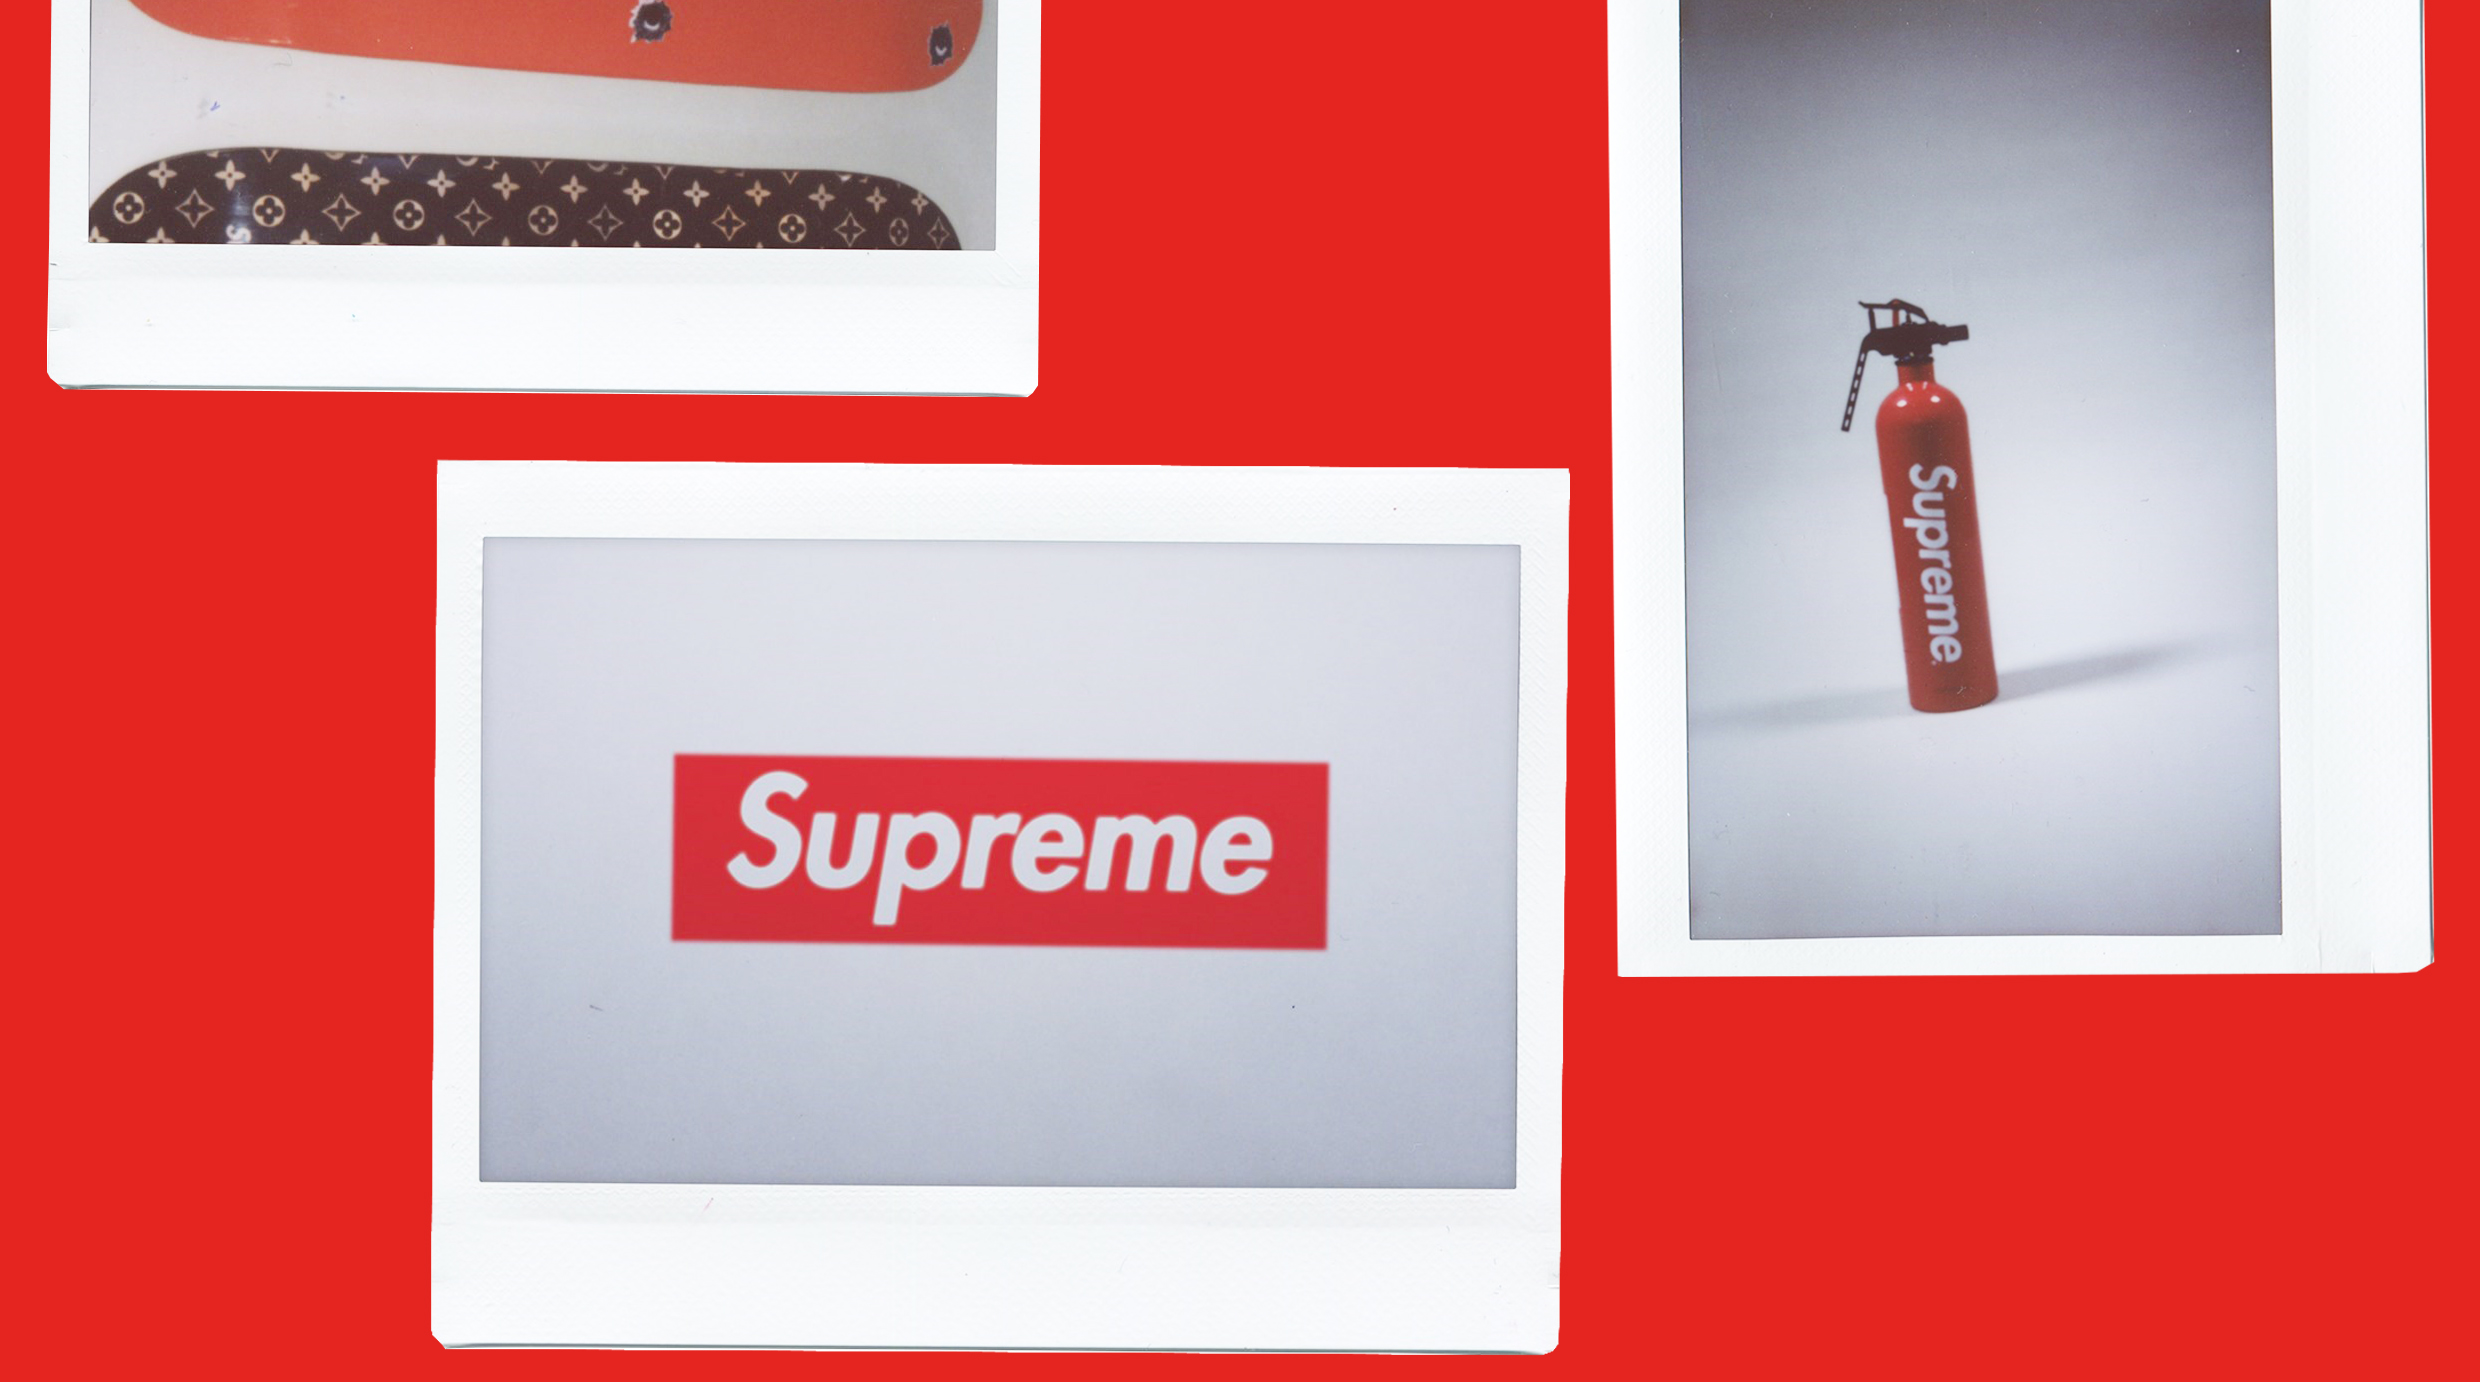 History behind the hype: Supreme and its supremacy